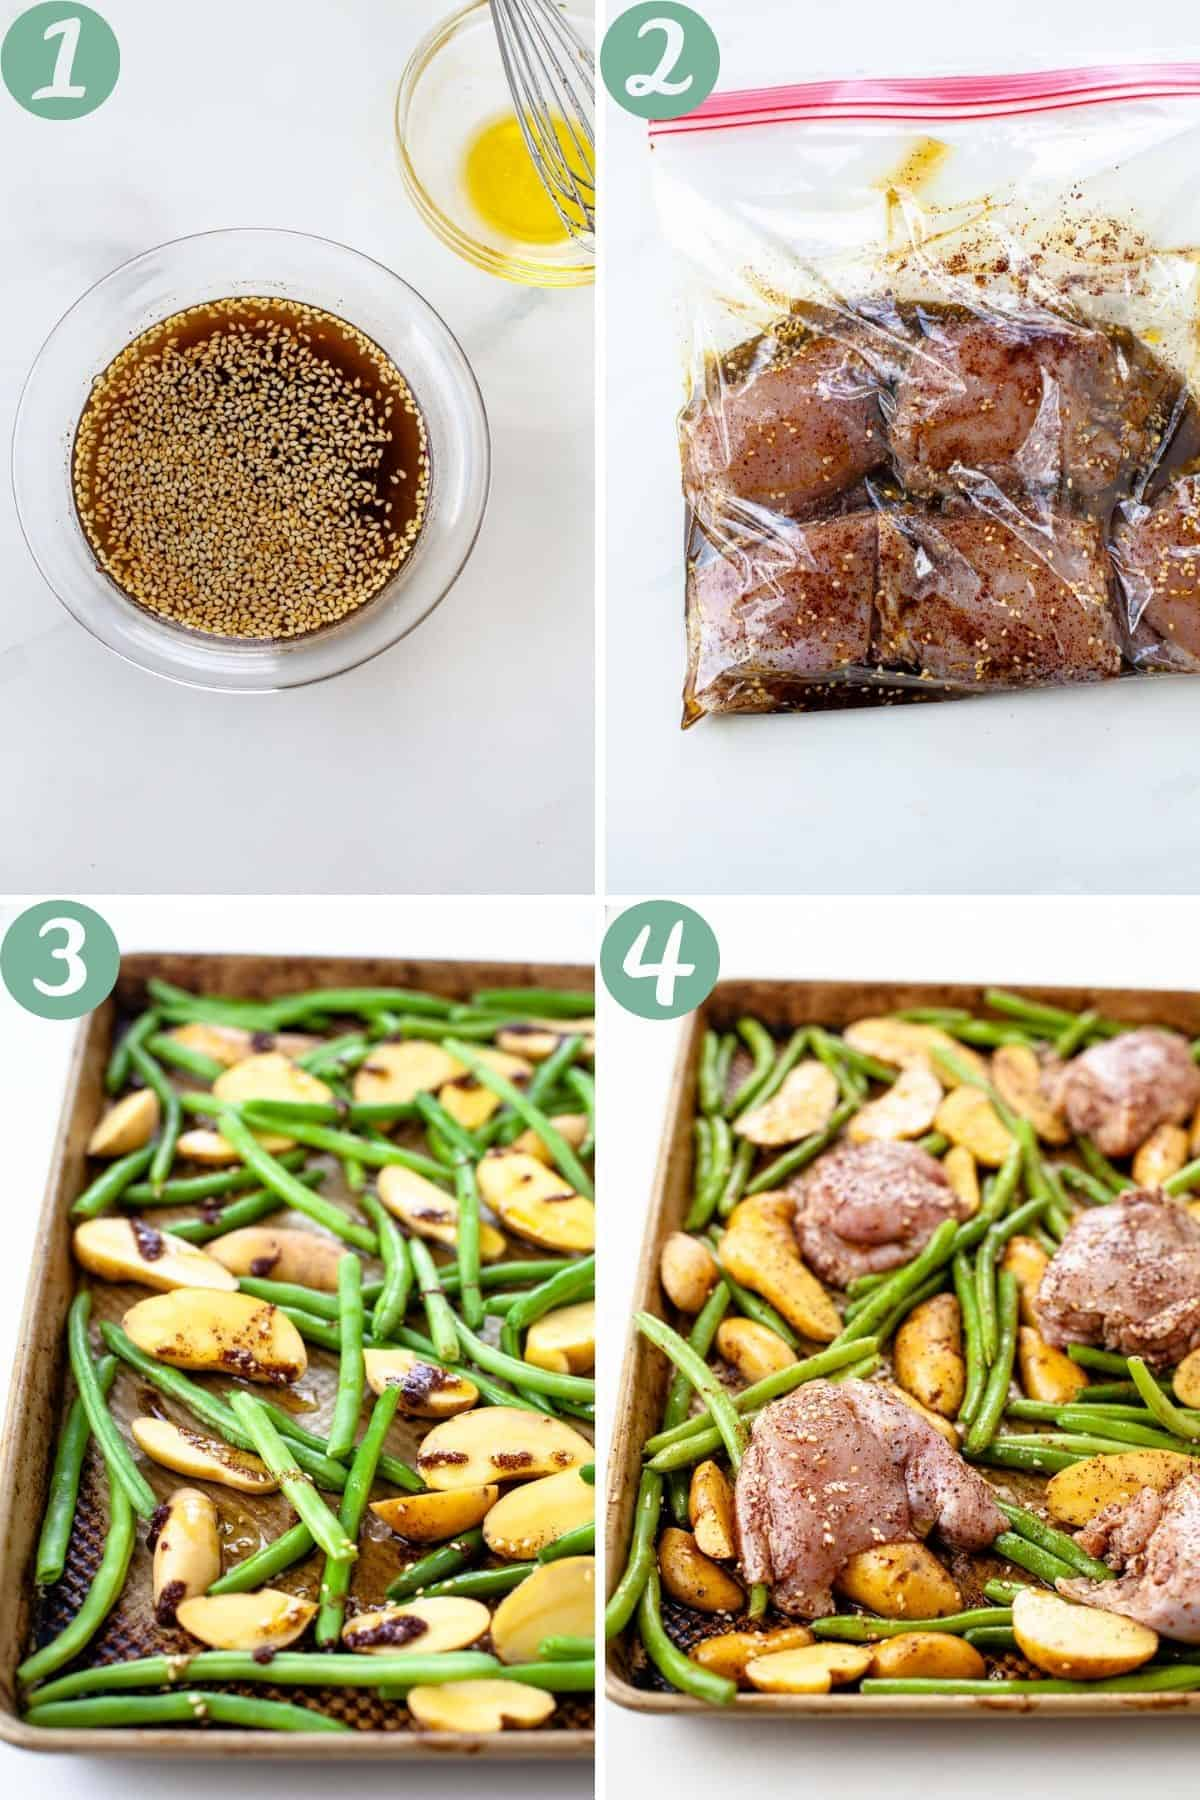 step by step process marinating chicken green beans fingerling potatoes and chicken thighs on sheet pan